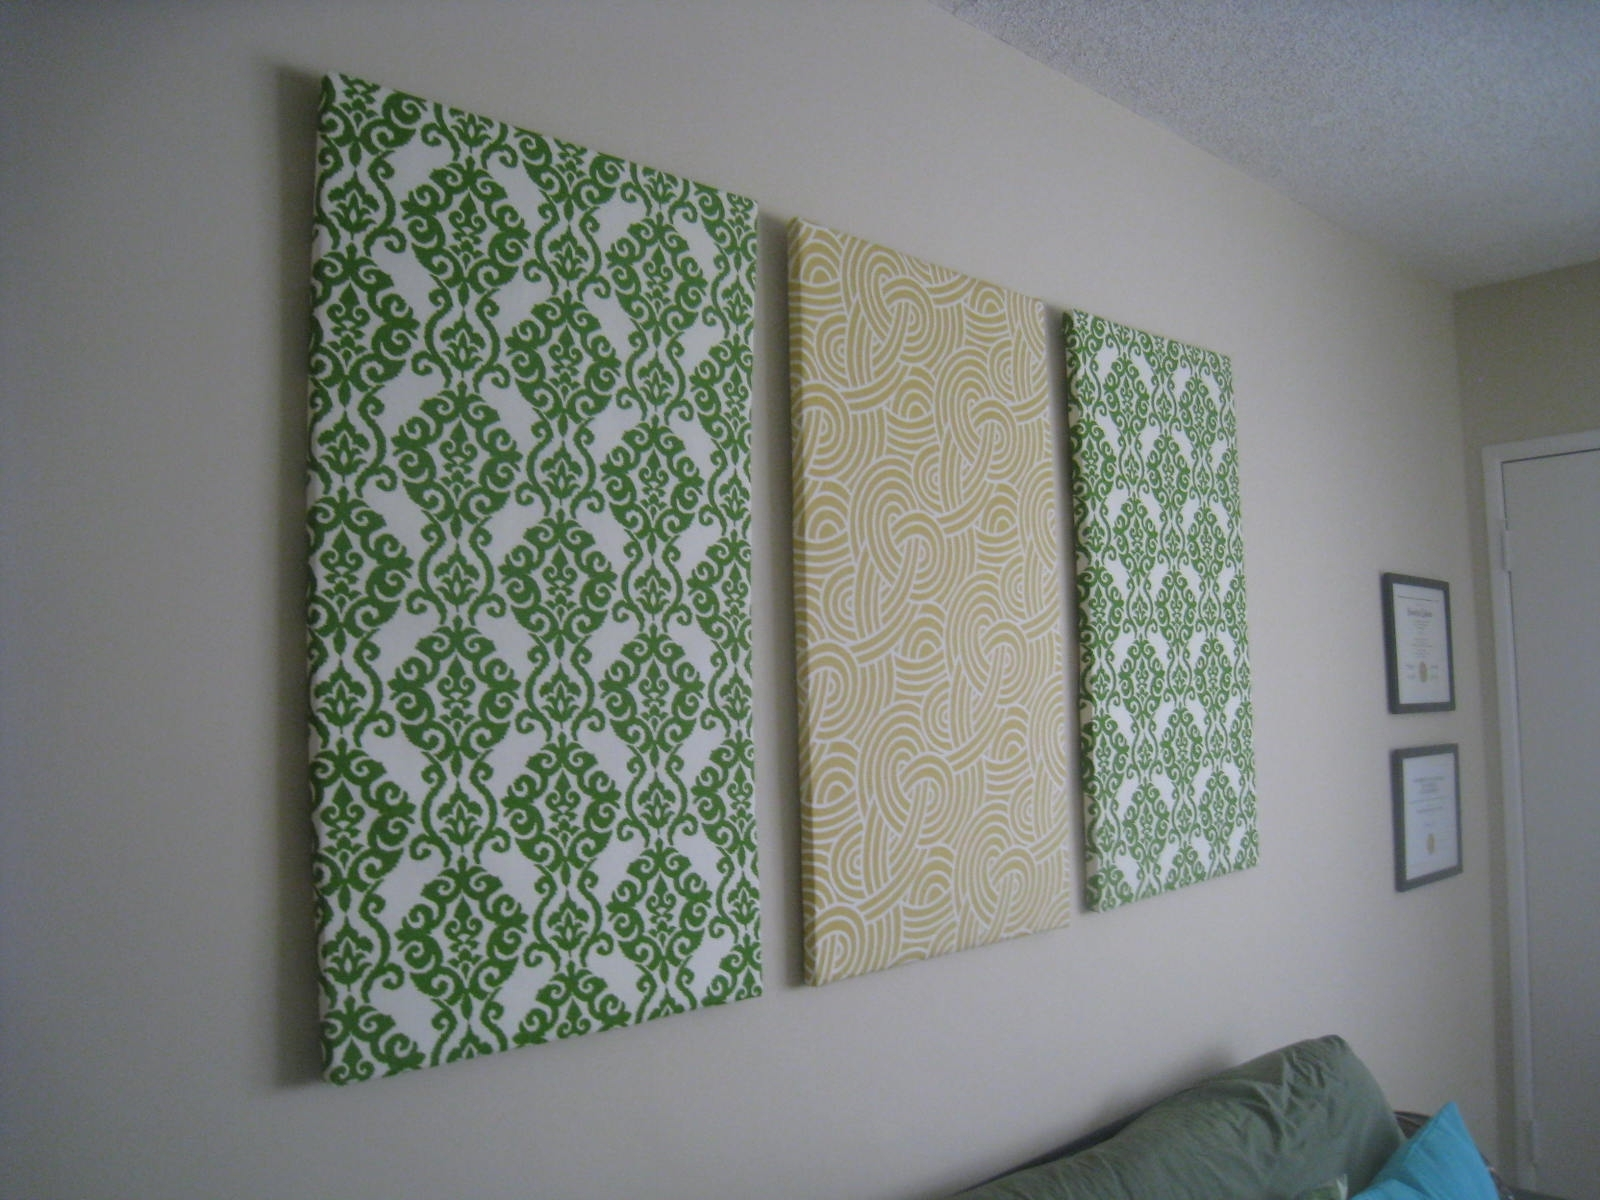 Art: Fabric Wall Art Diy Intended For Most Recent Large Fabric Wall Art (View 4 of 15)